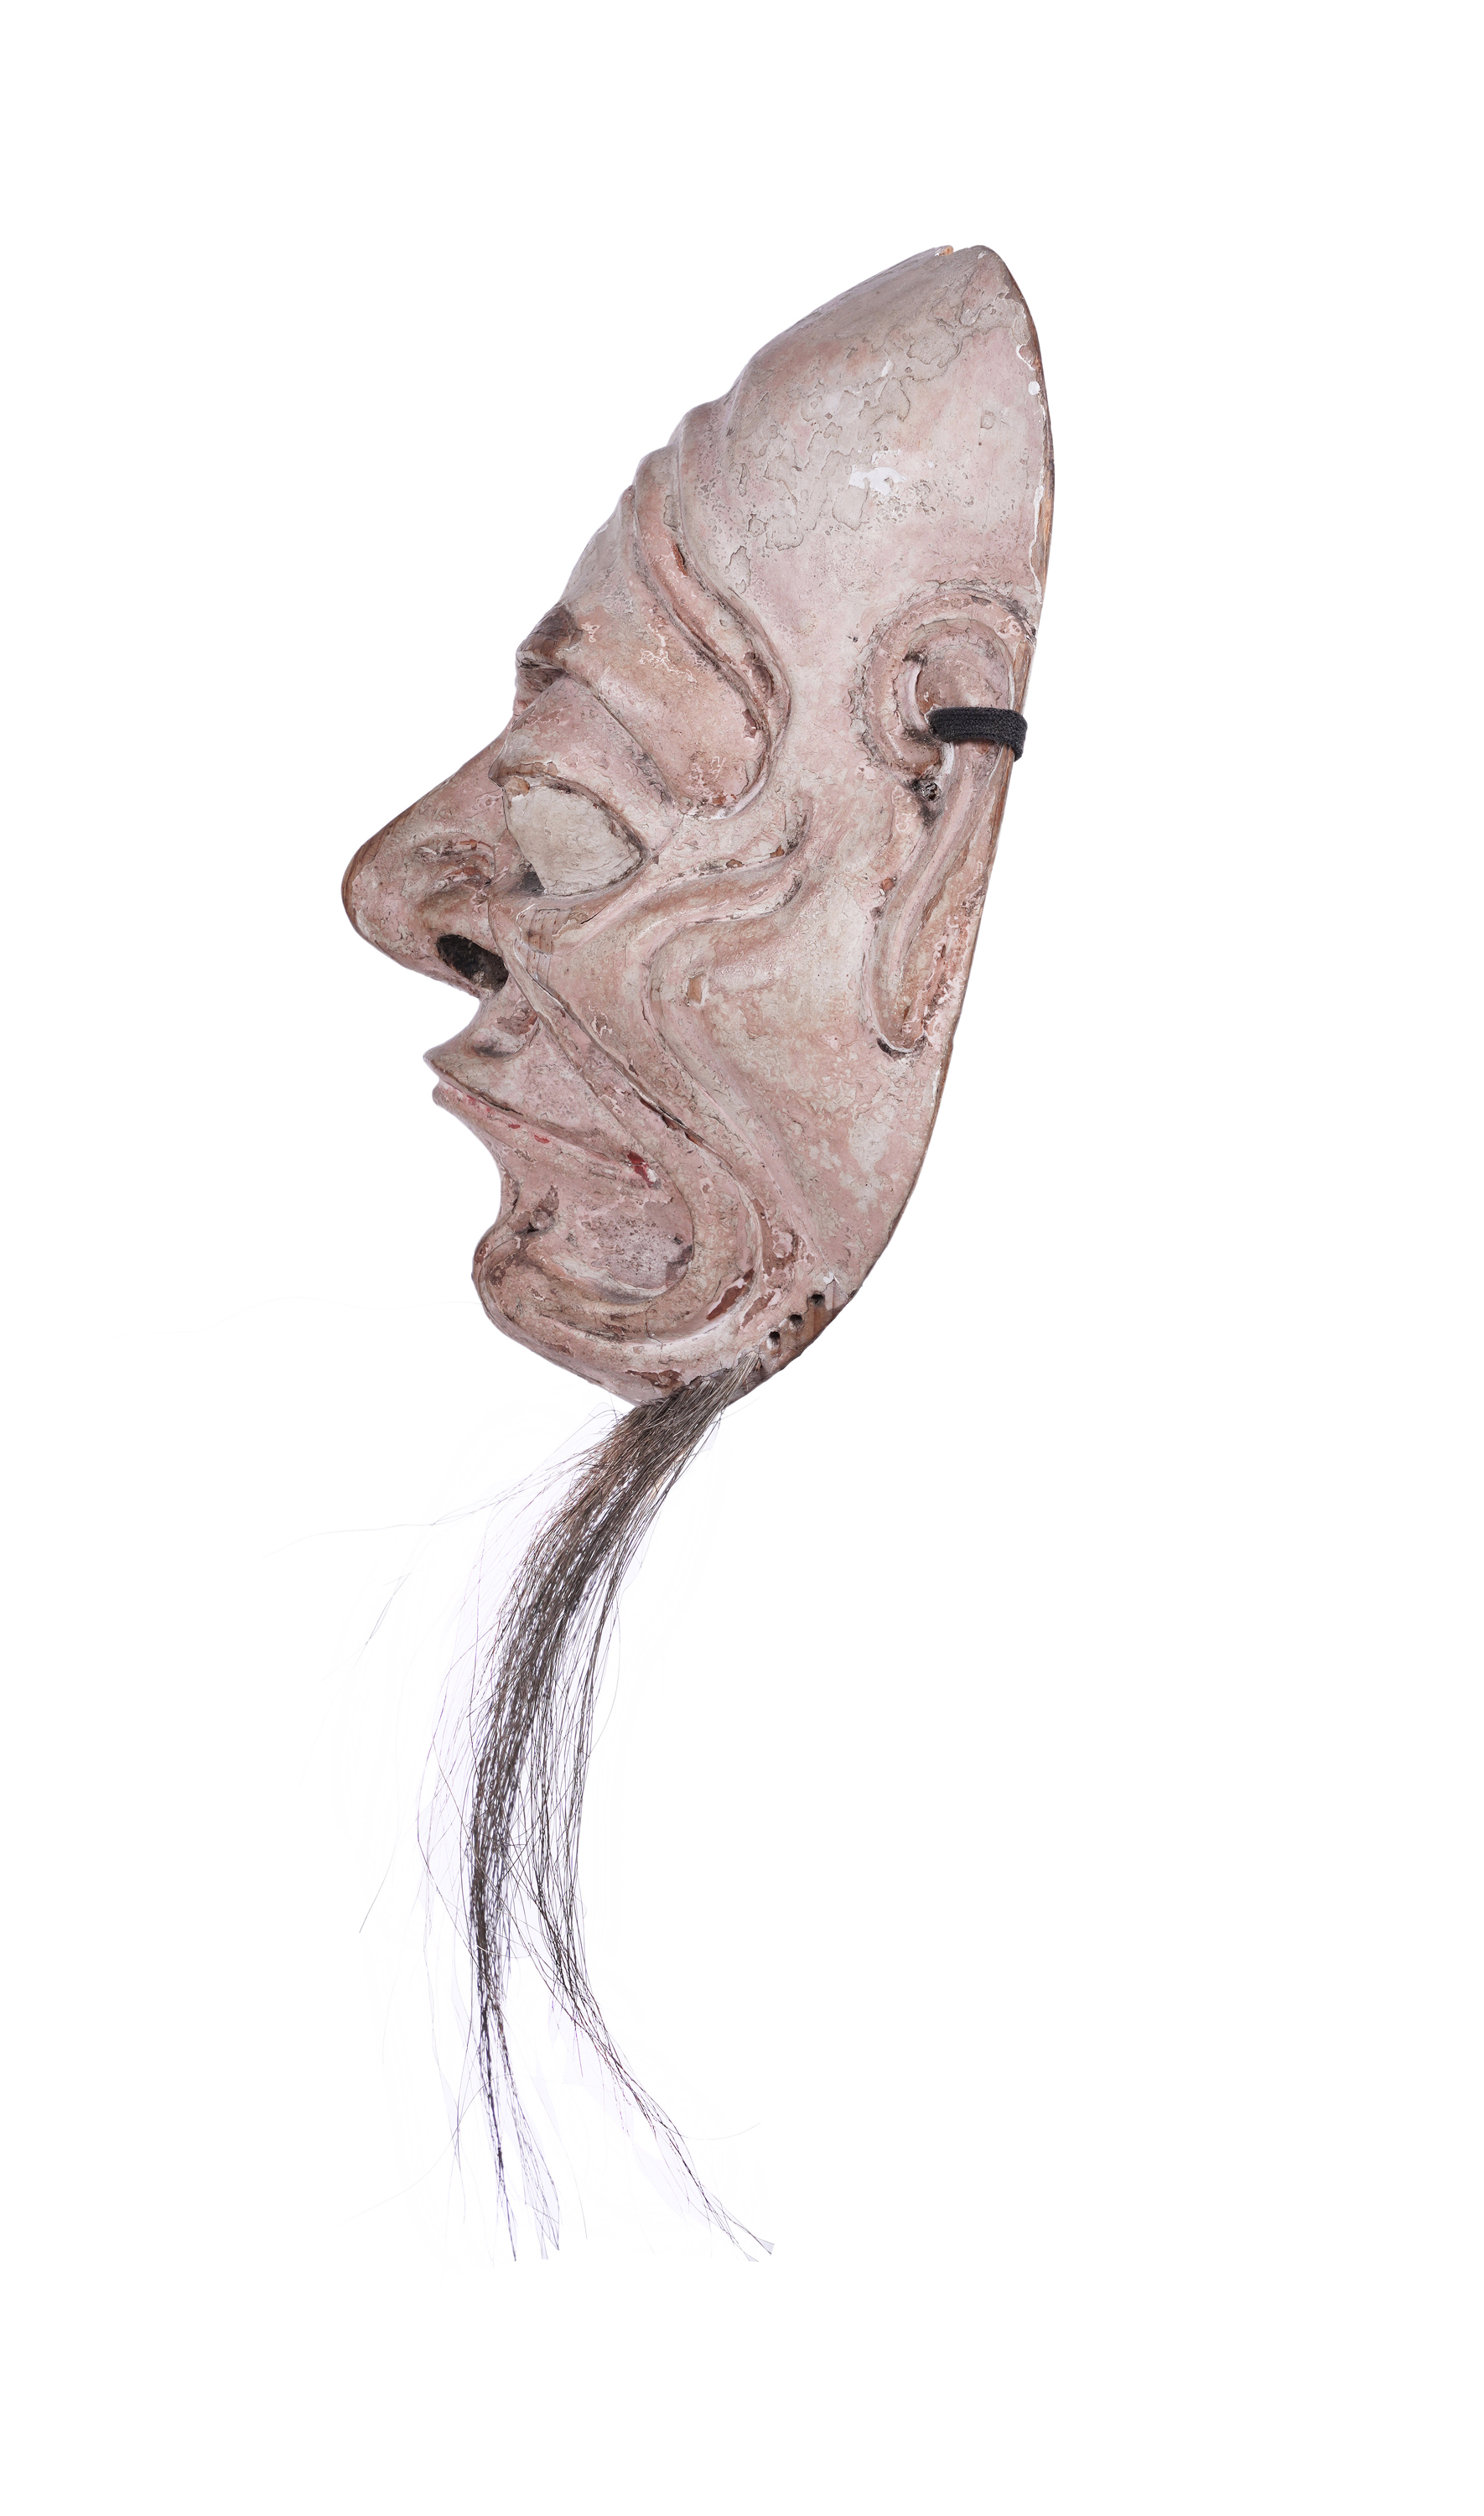 .A LACQUERED WOODEN MASK OF AN OLD MAN Japan, 19th century H: 18,2 cm - w: 14,5 cm Provenance: A - Image 2 of 4